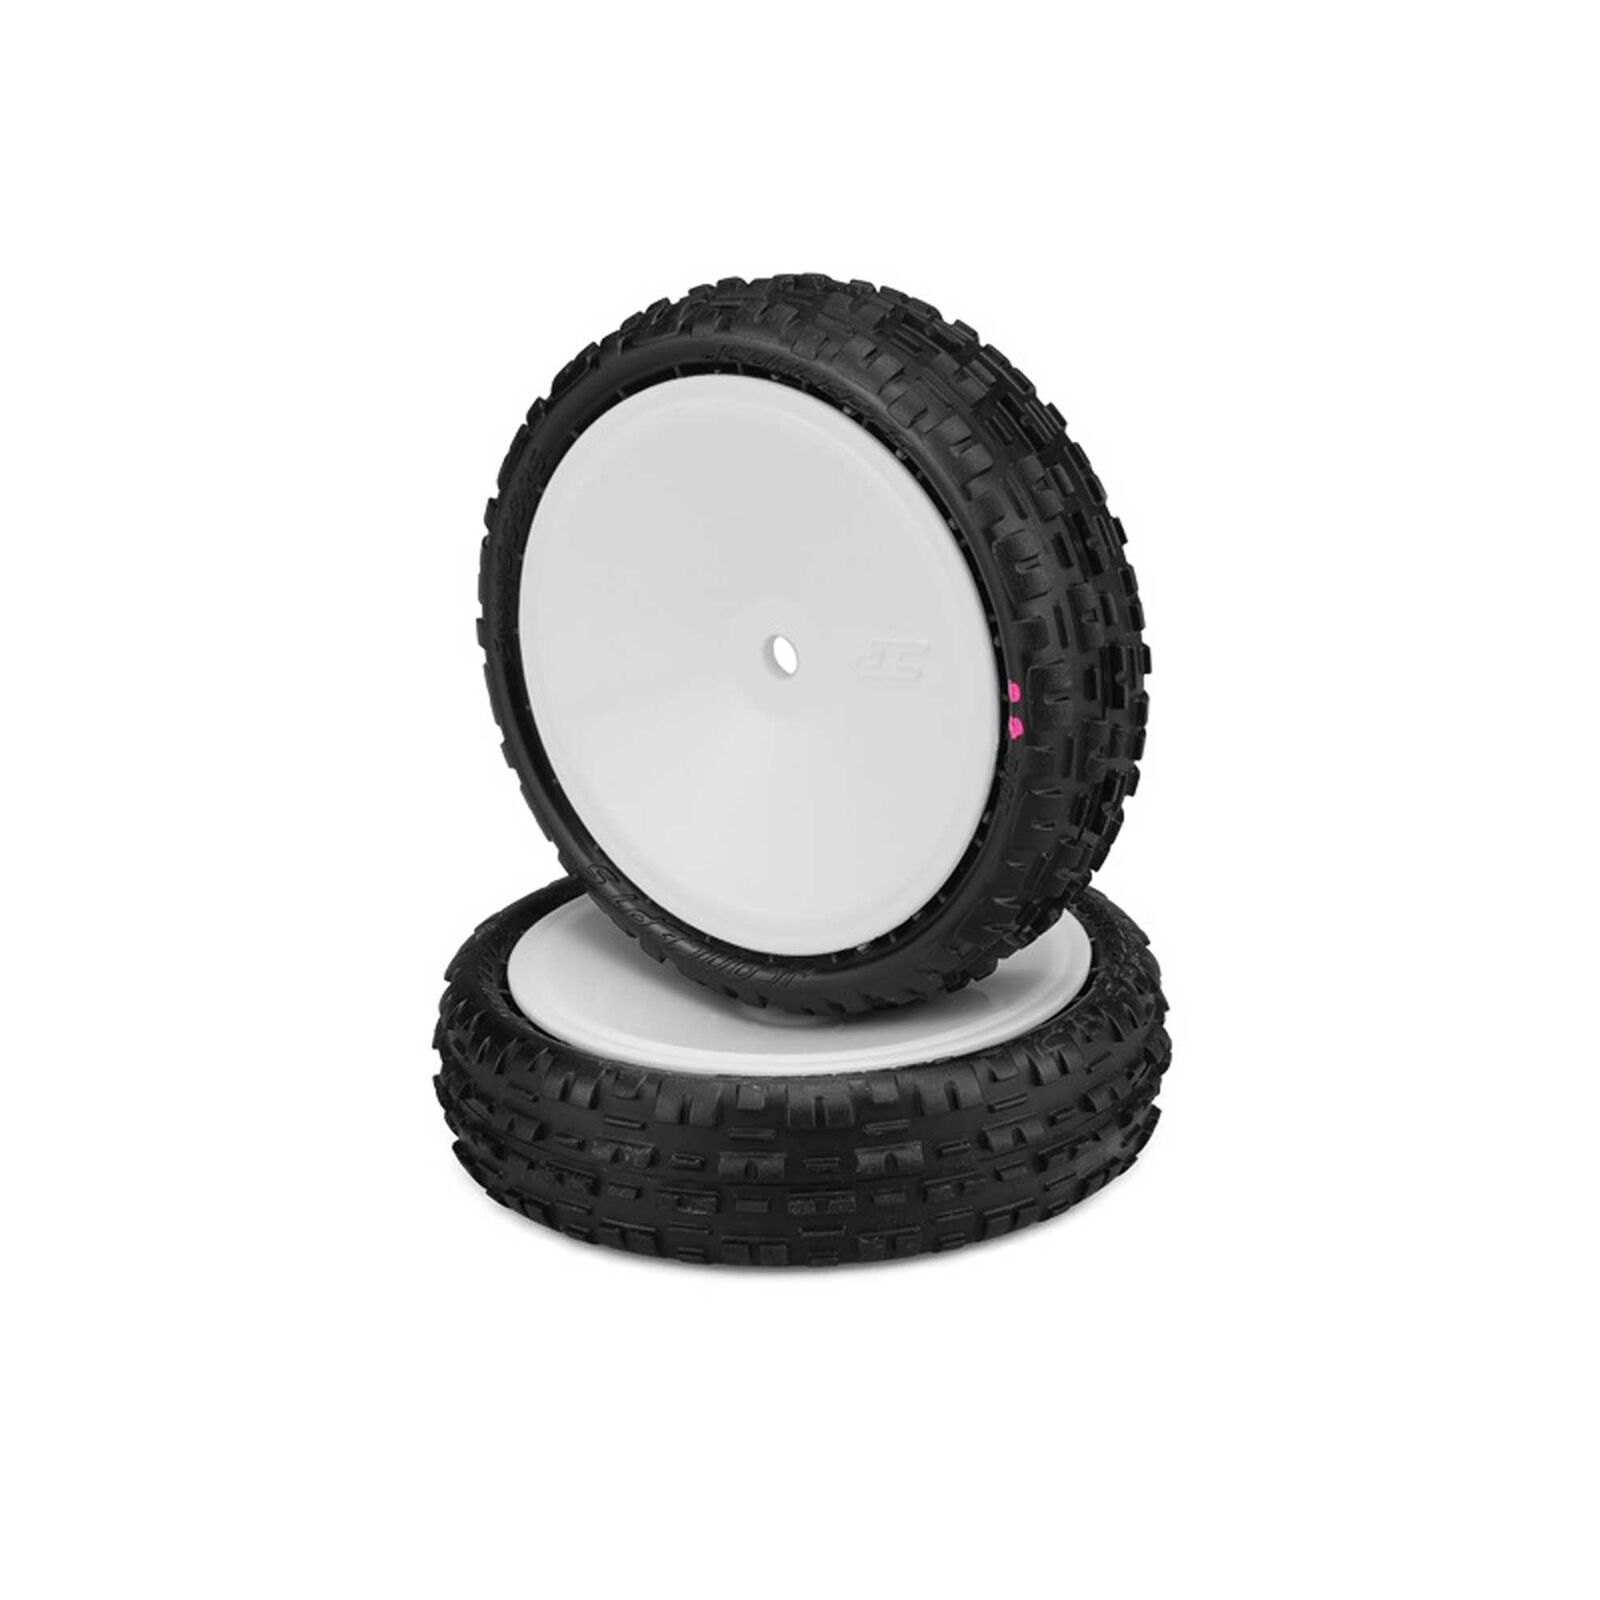 Swaggers 2.2 Front Tires, Pre-mounted on 3376W, Pink Compound (2)